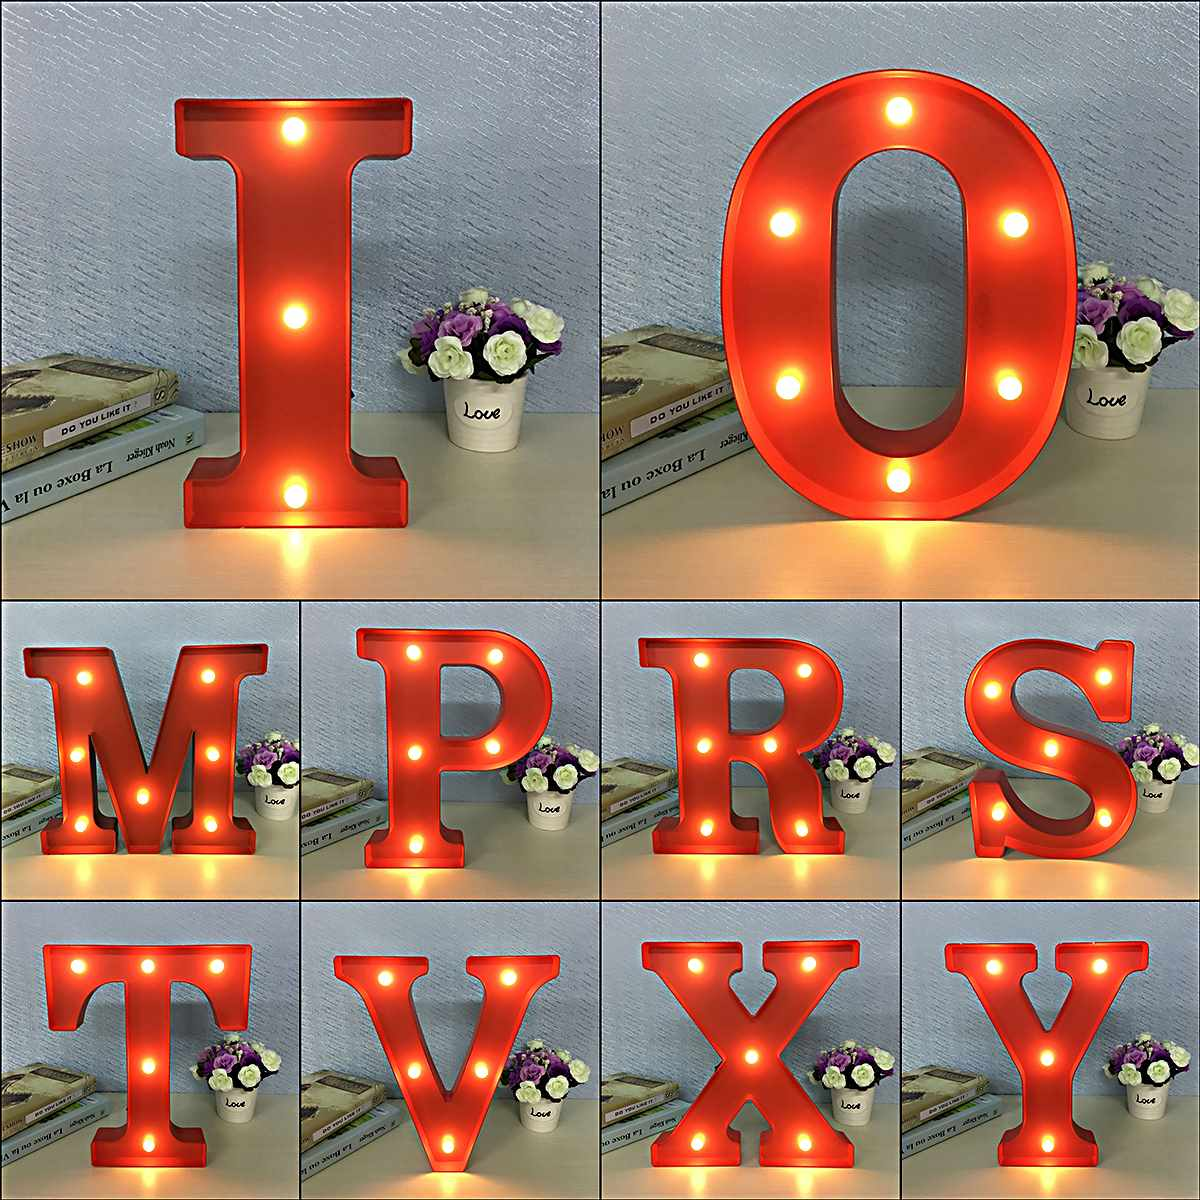 hot sale led night light lamp kids marquee letter lights vintage alphabet light up christmas party wall lamp battery operatedin night lights from lights - Marquee Letter Lights